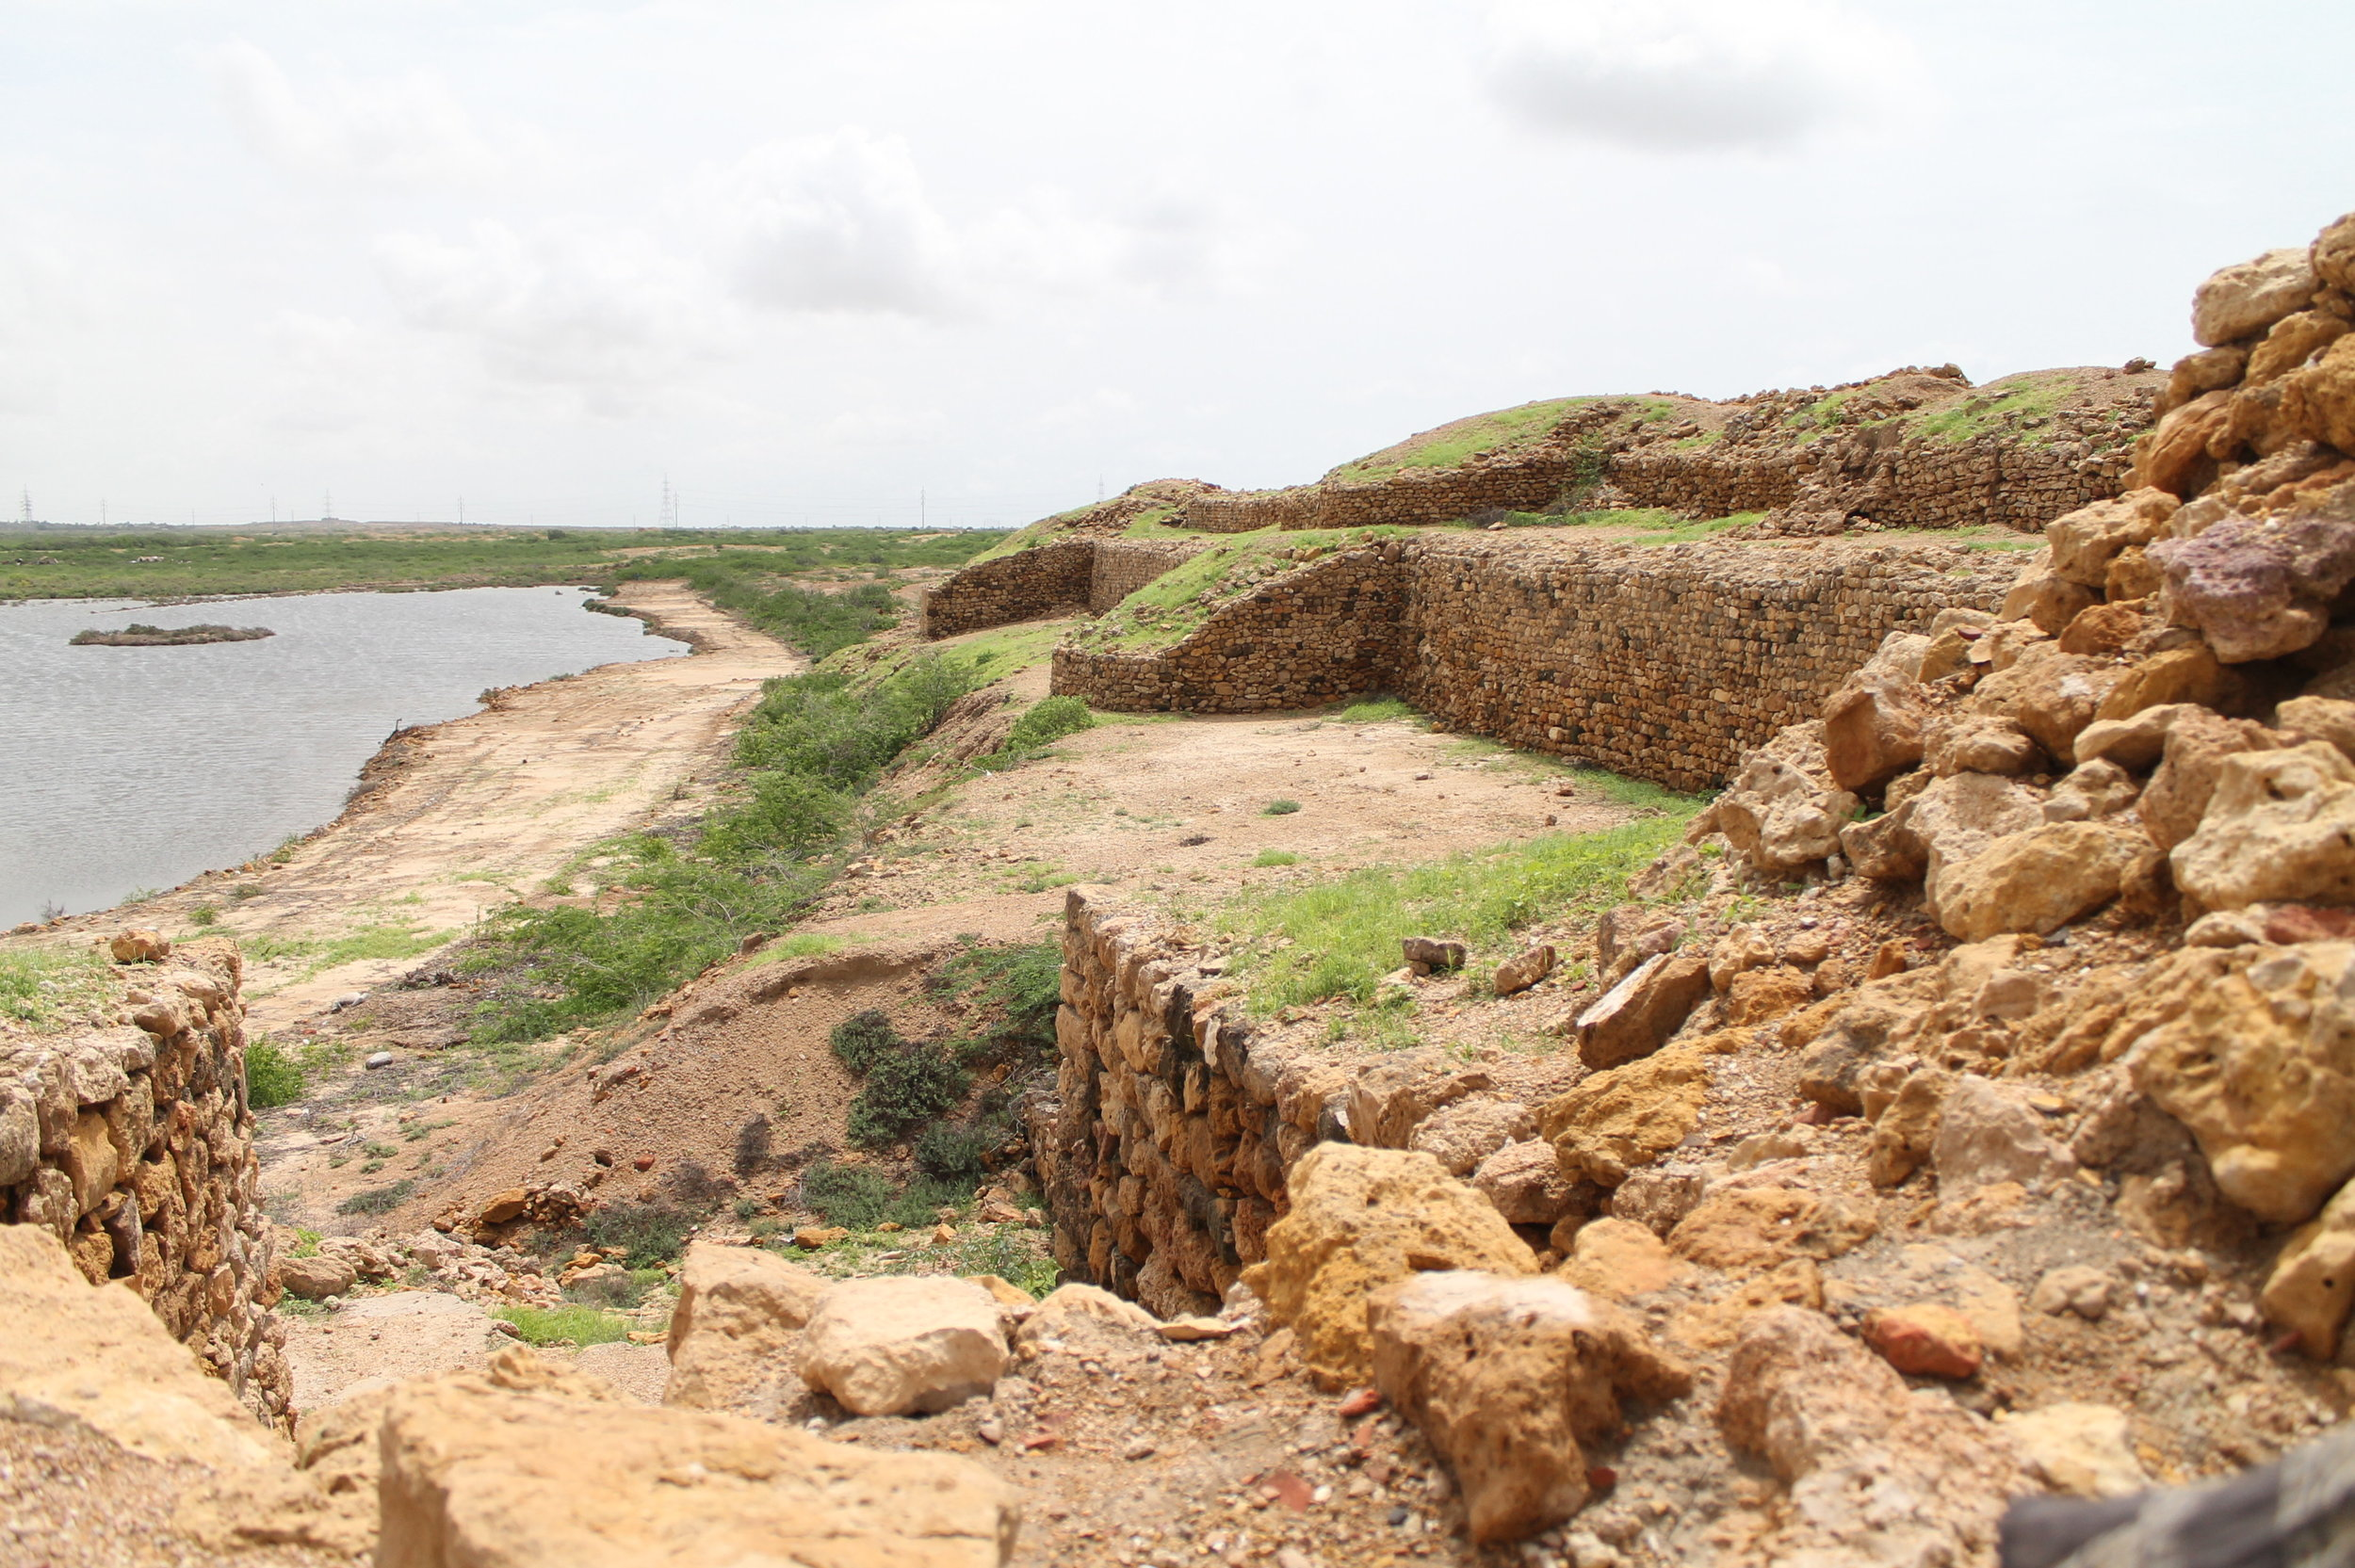 View of the archaeological site of Bhambhore, where Sasui grew up